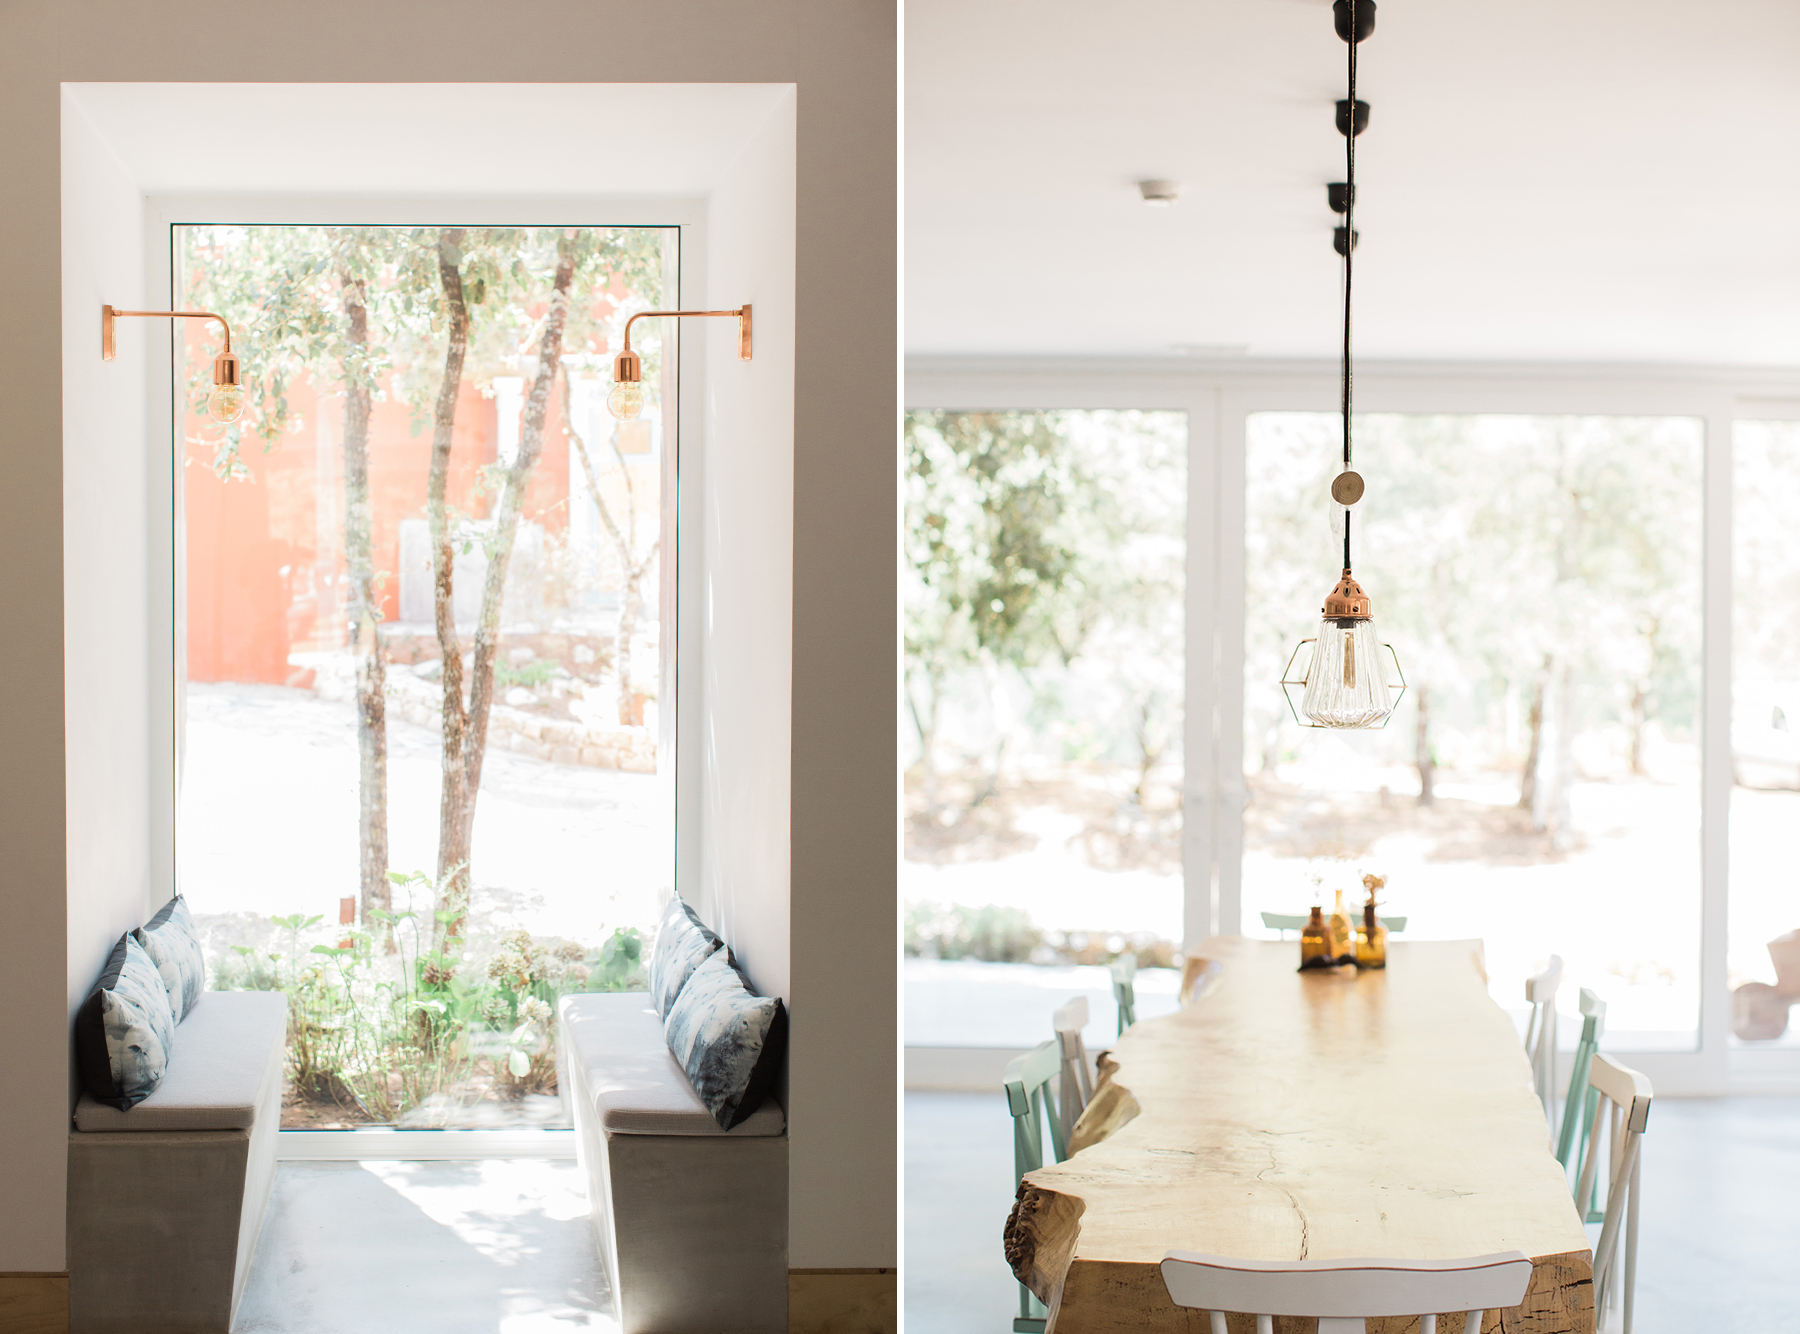 luz+charming+house+wedding.jpg